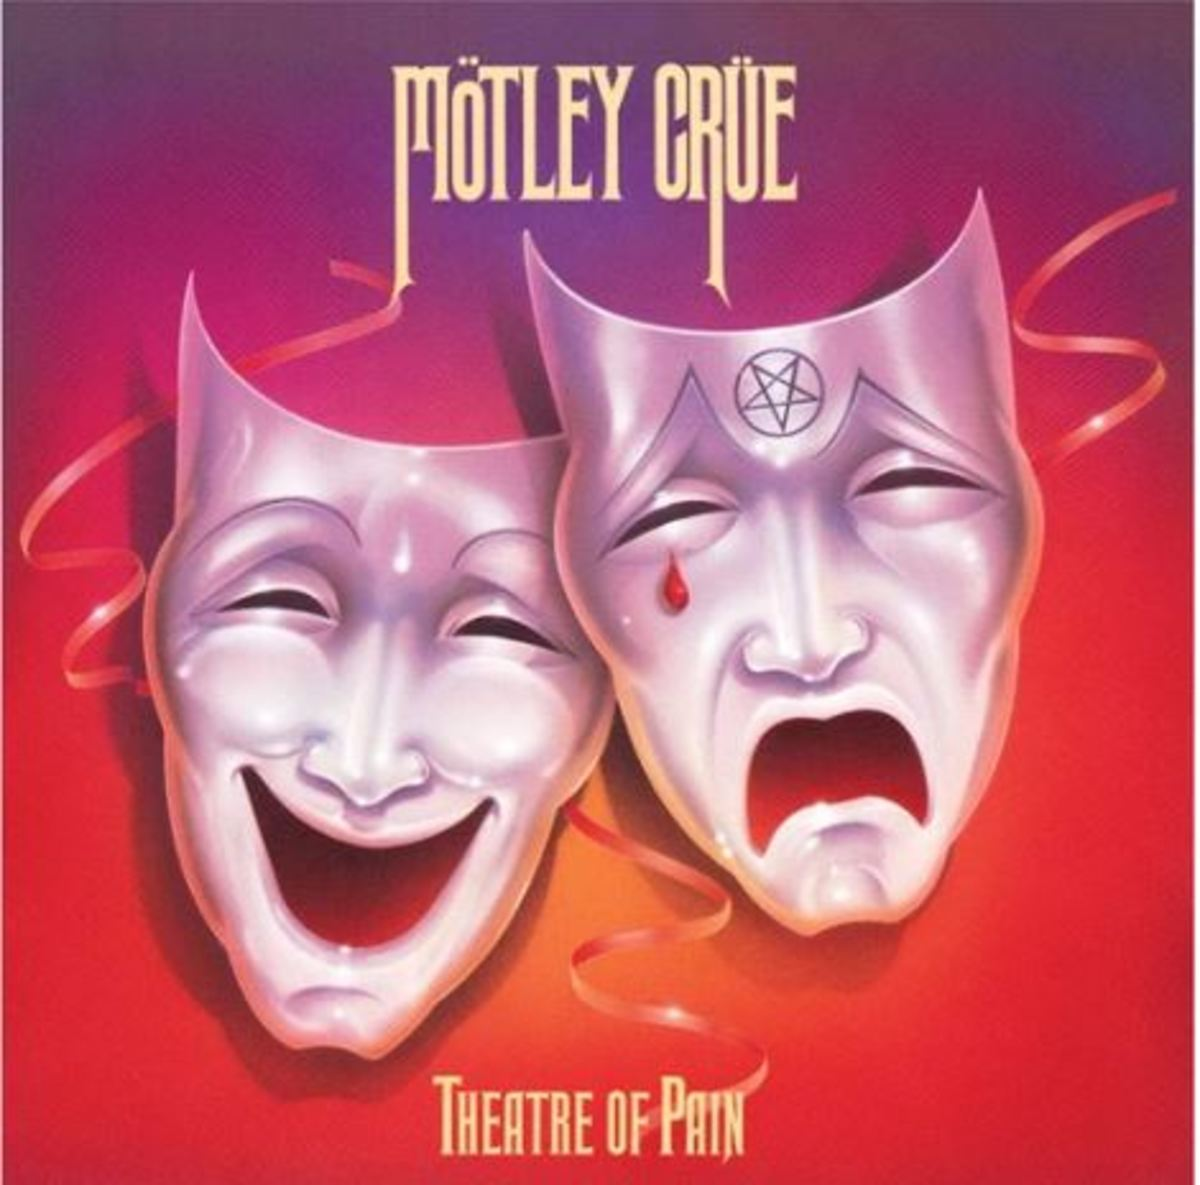 revisiting-motley-crues-theater-of-pain